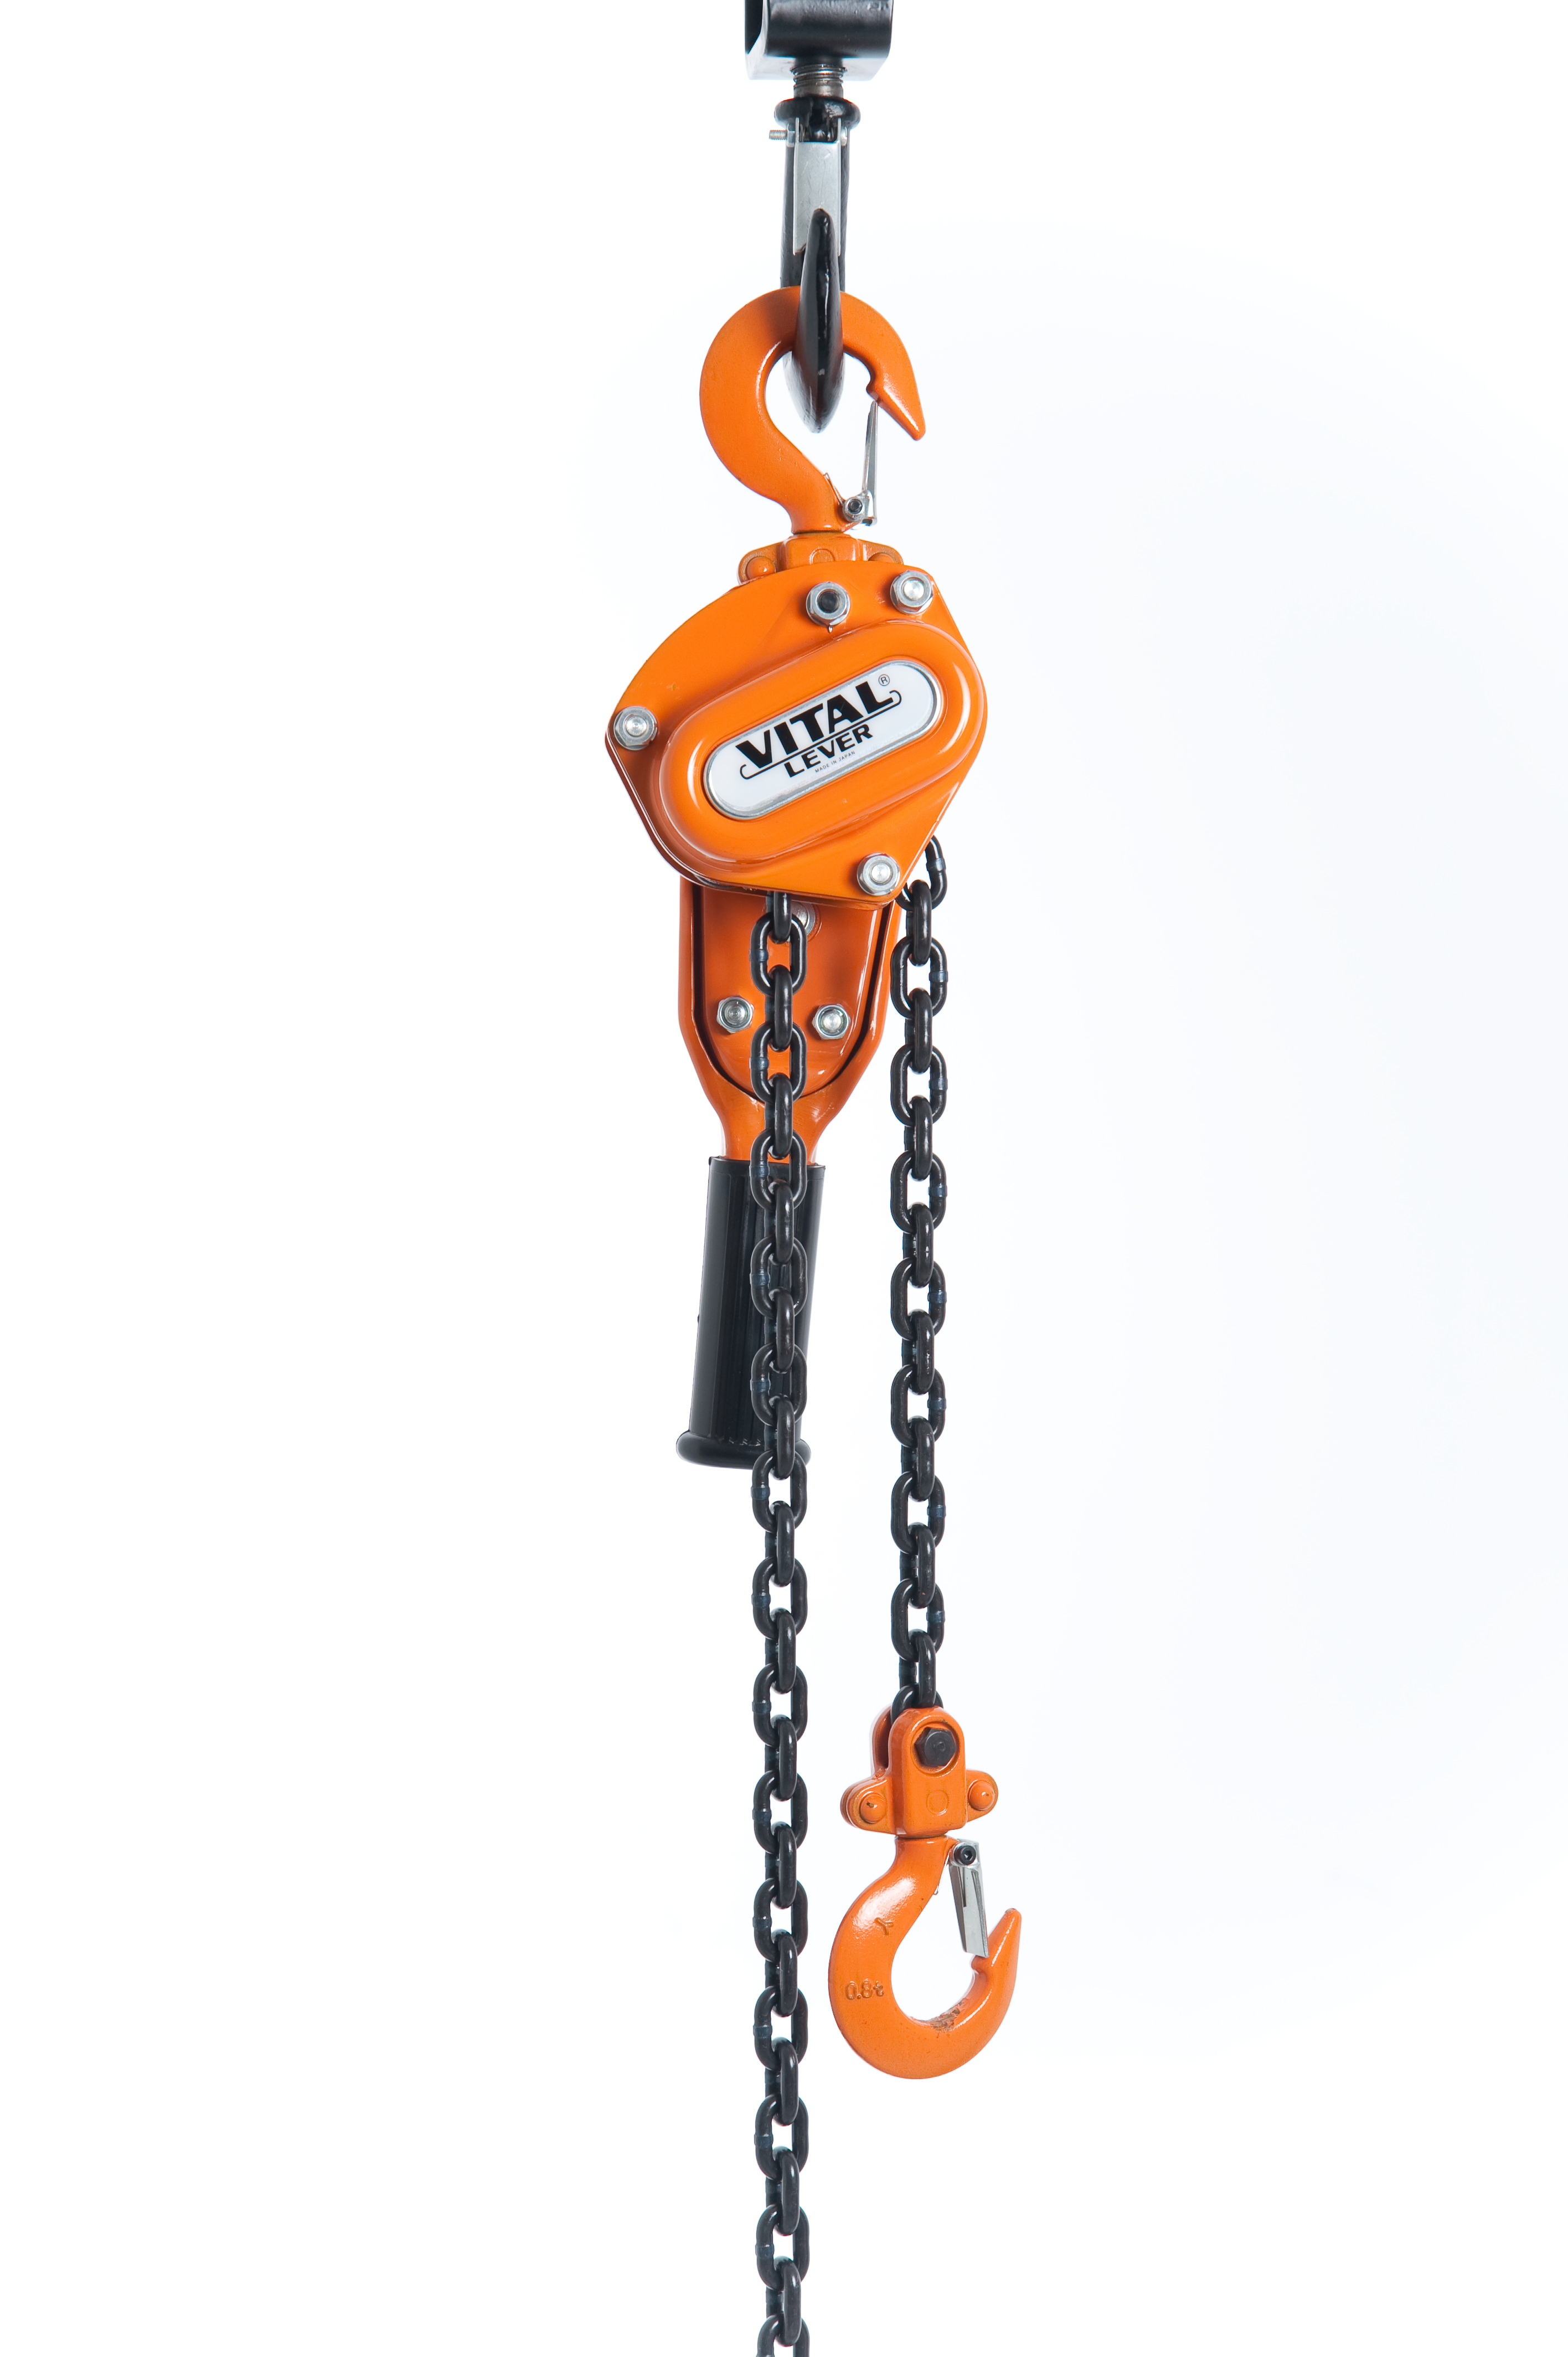 VITAL LEVER BLOCK VR SERIES 0.8T X 3M WITH OVER LOAD PROTECTION